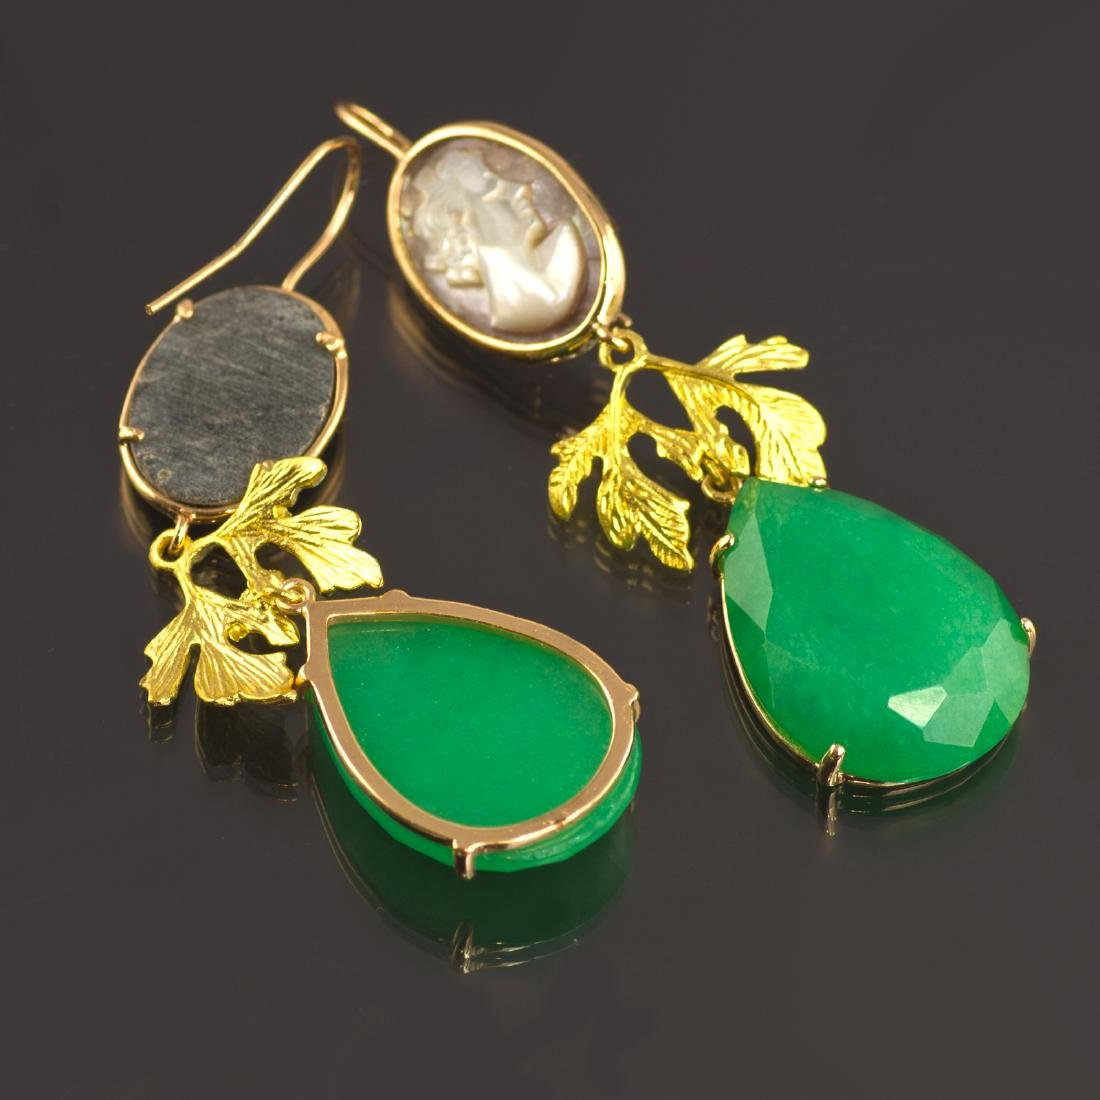 Classic Earrings with Jade and Cameo - 4